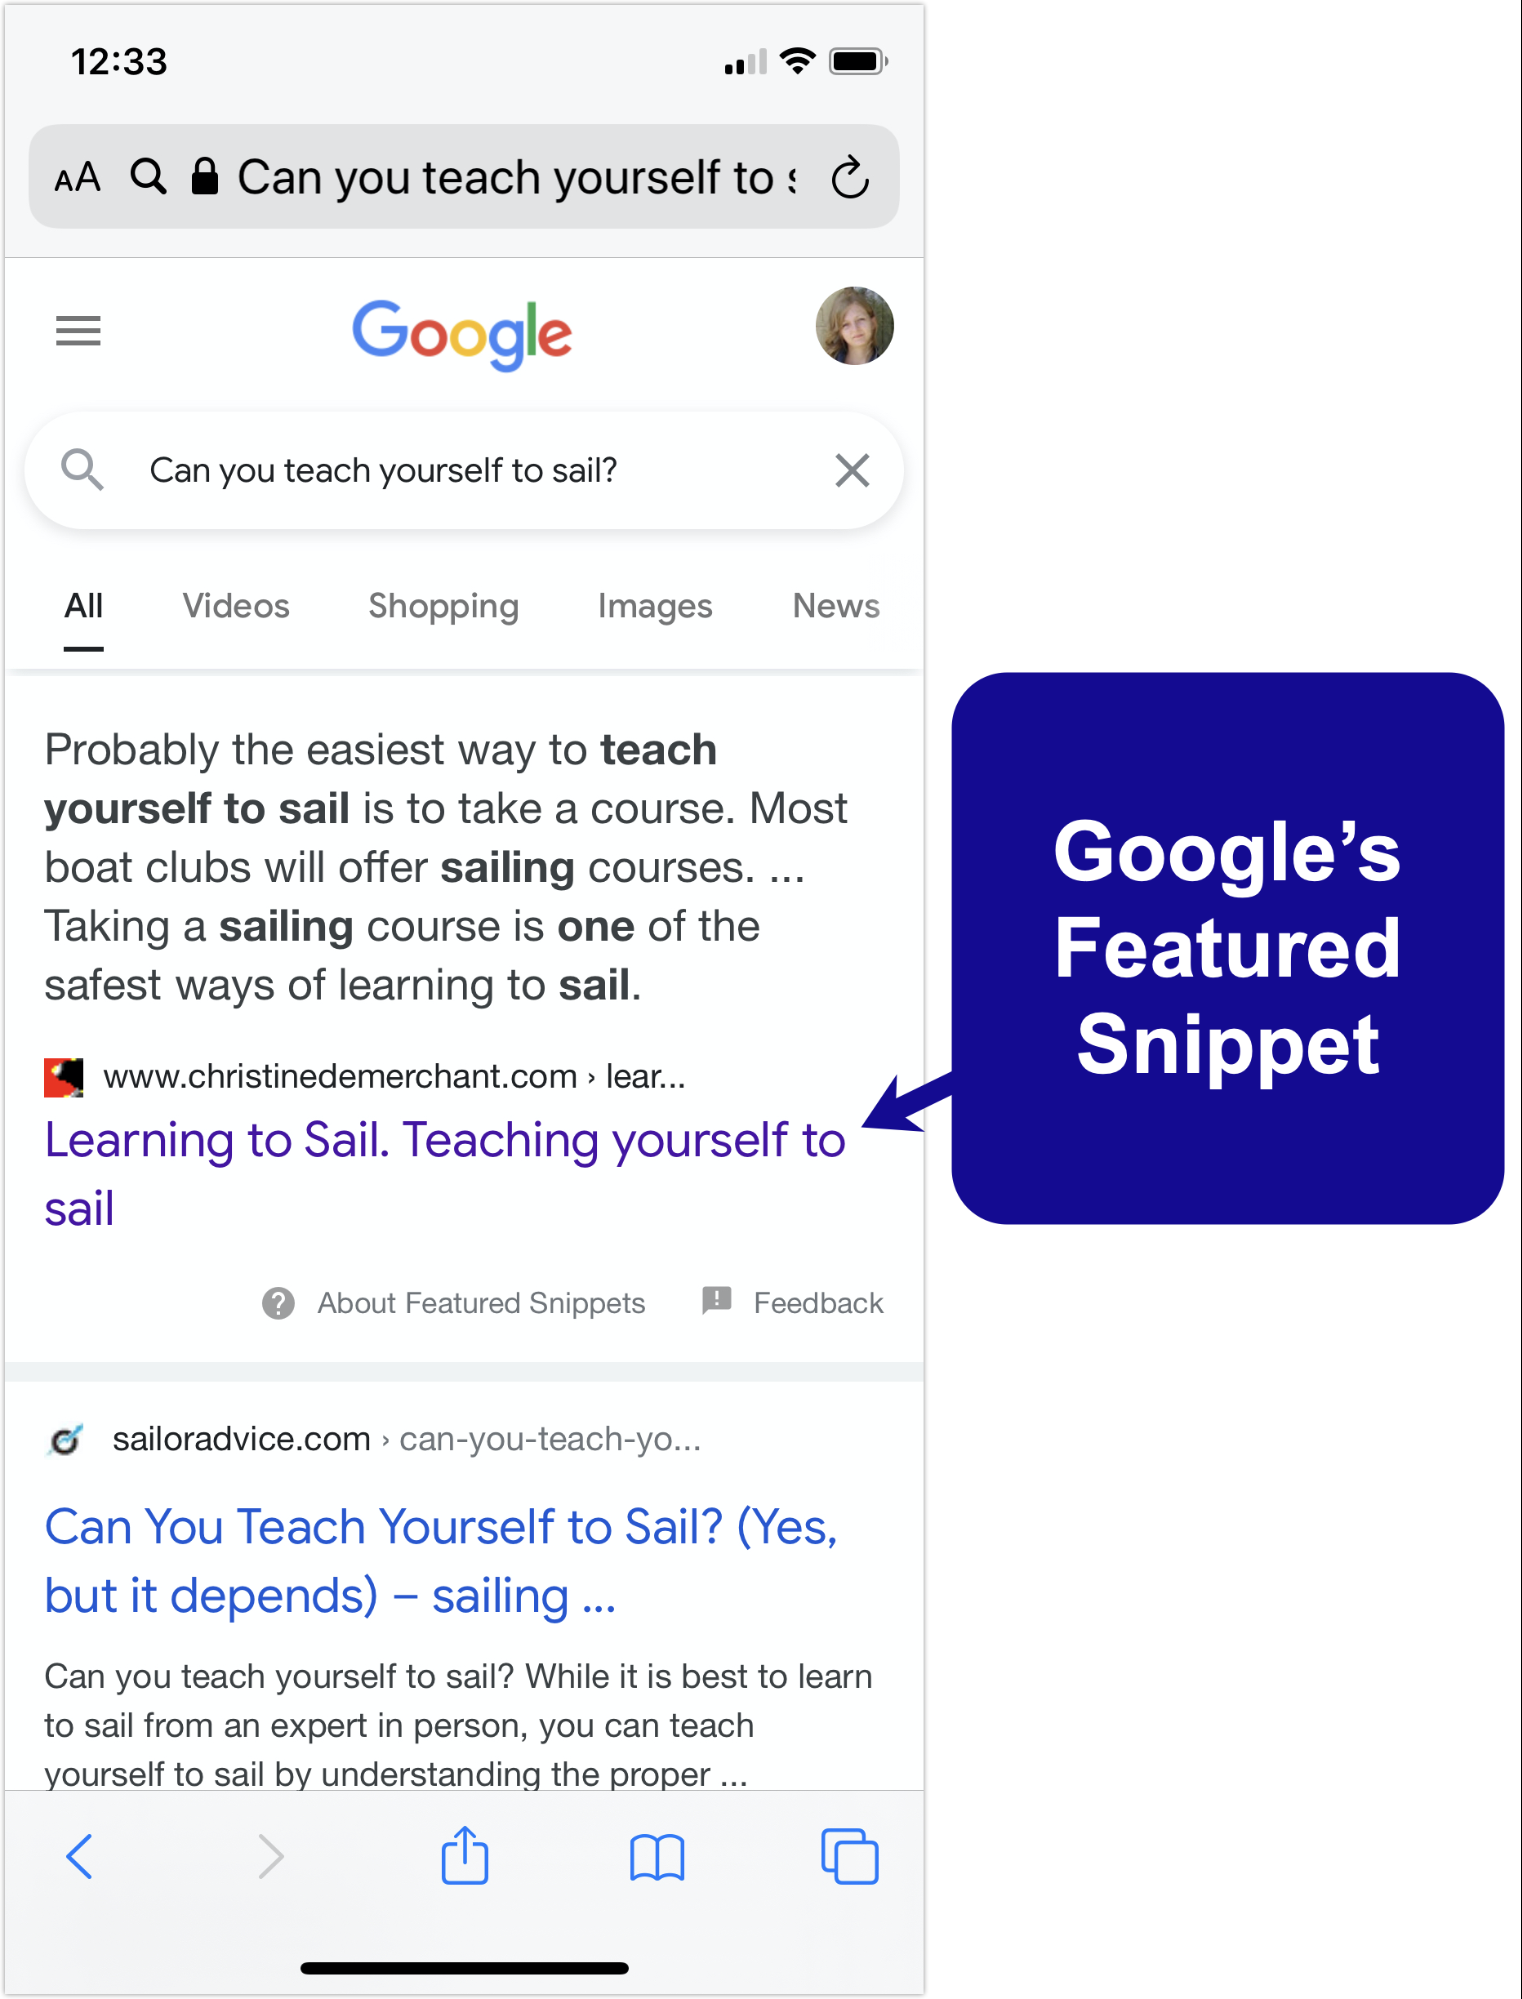 Google's featured snippet example.